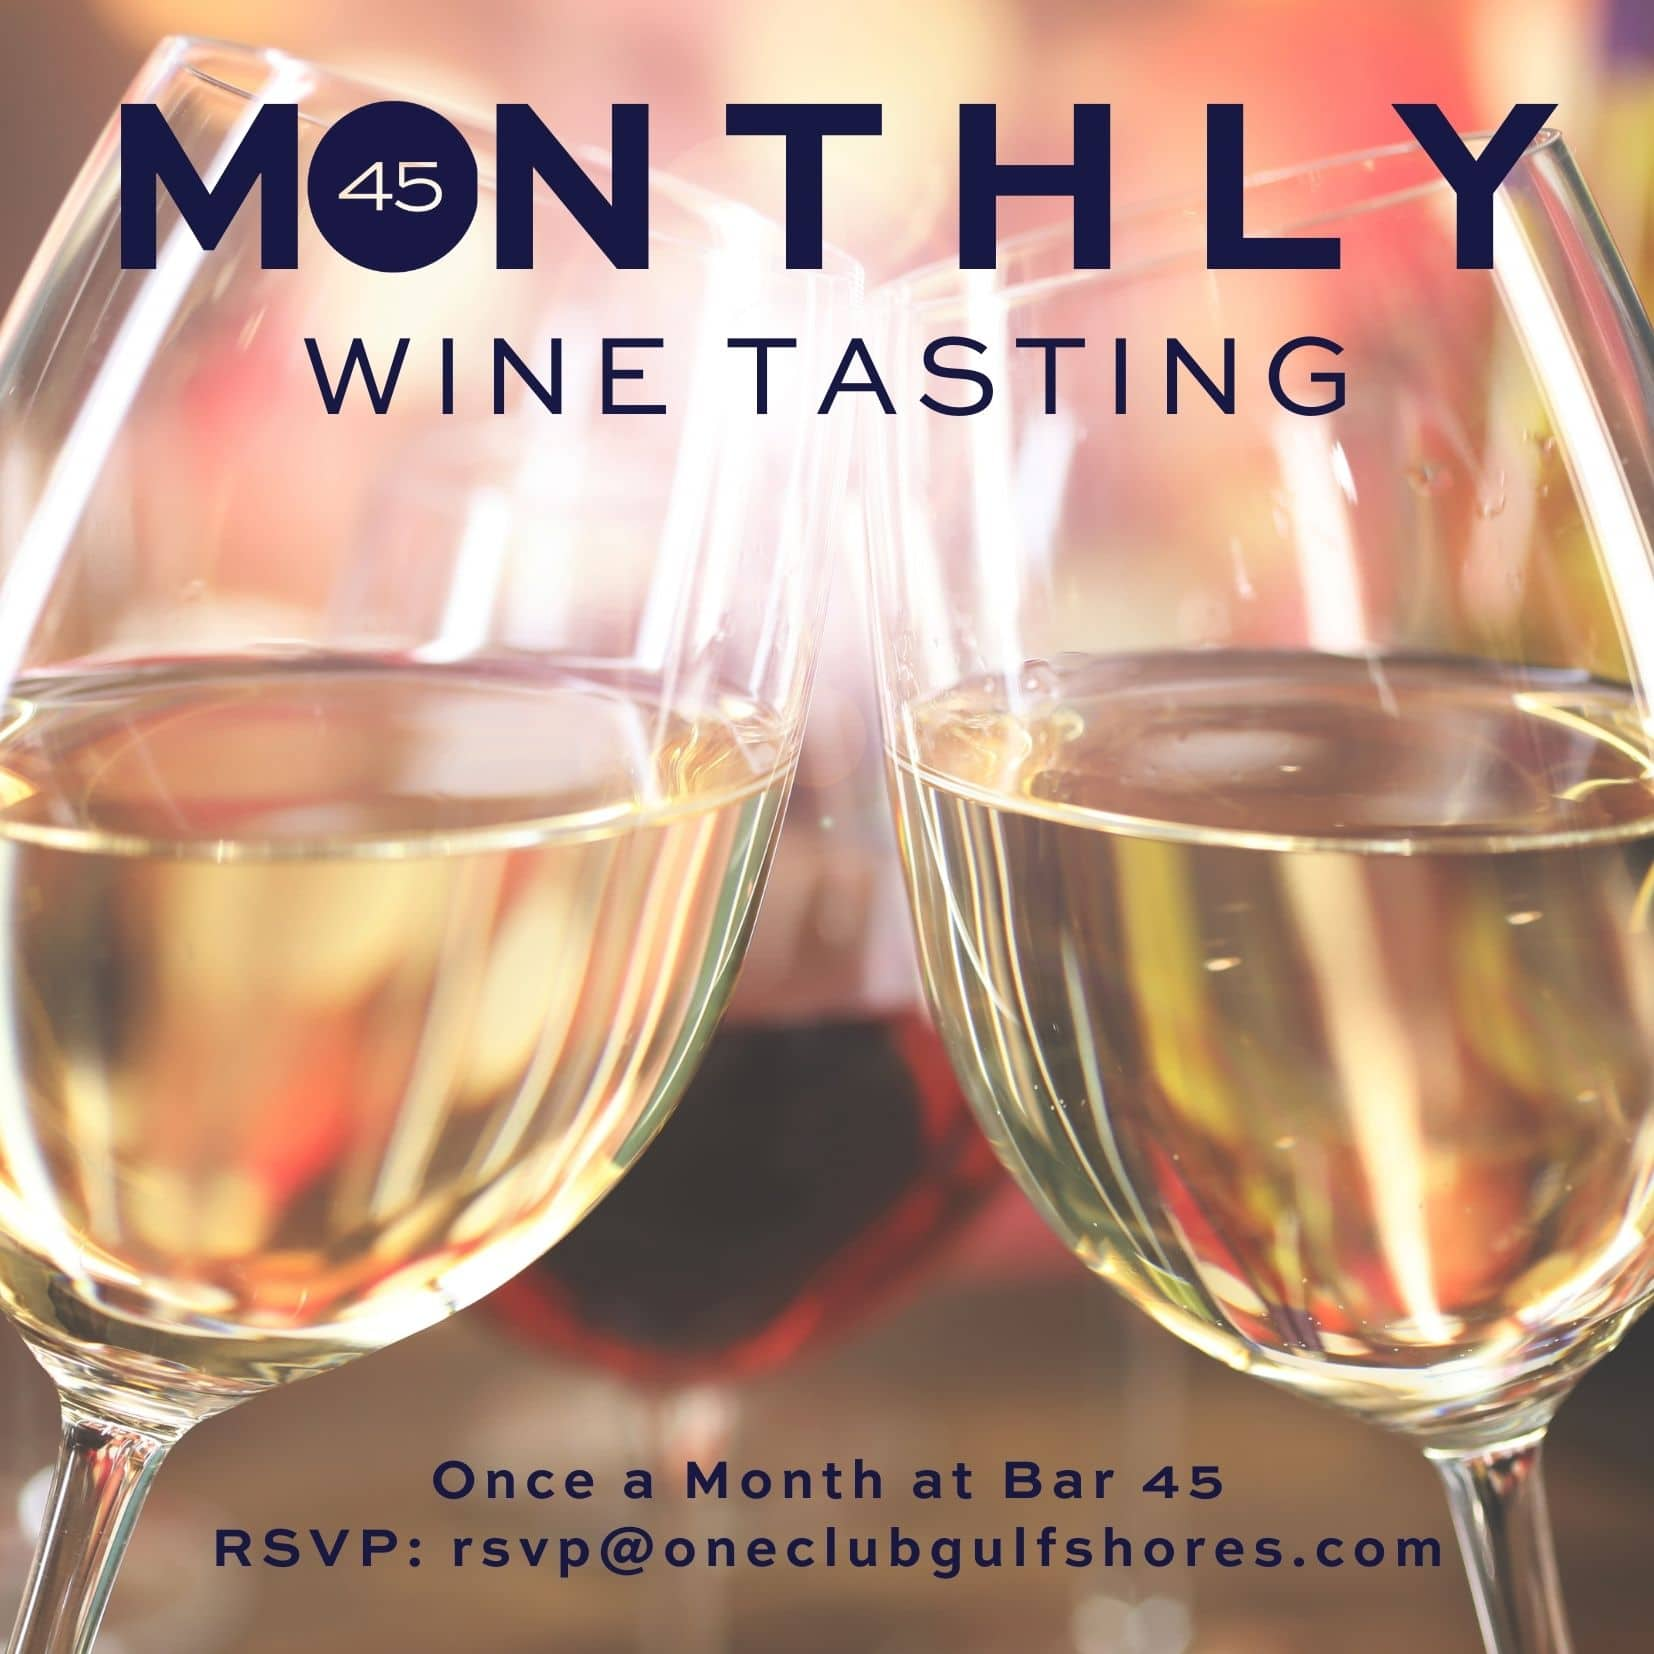 Monthly Wine Tasting at Bar 45 in Gulf Shores